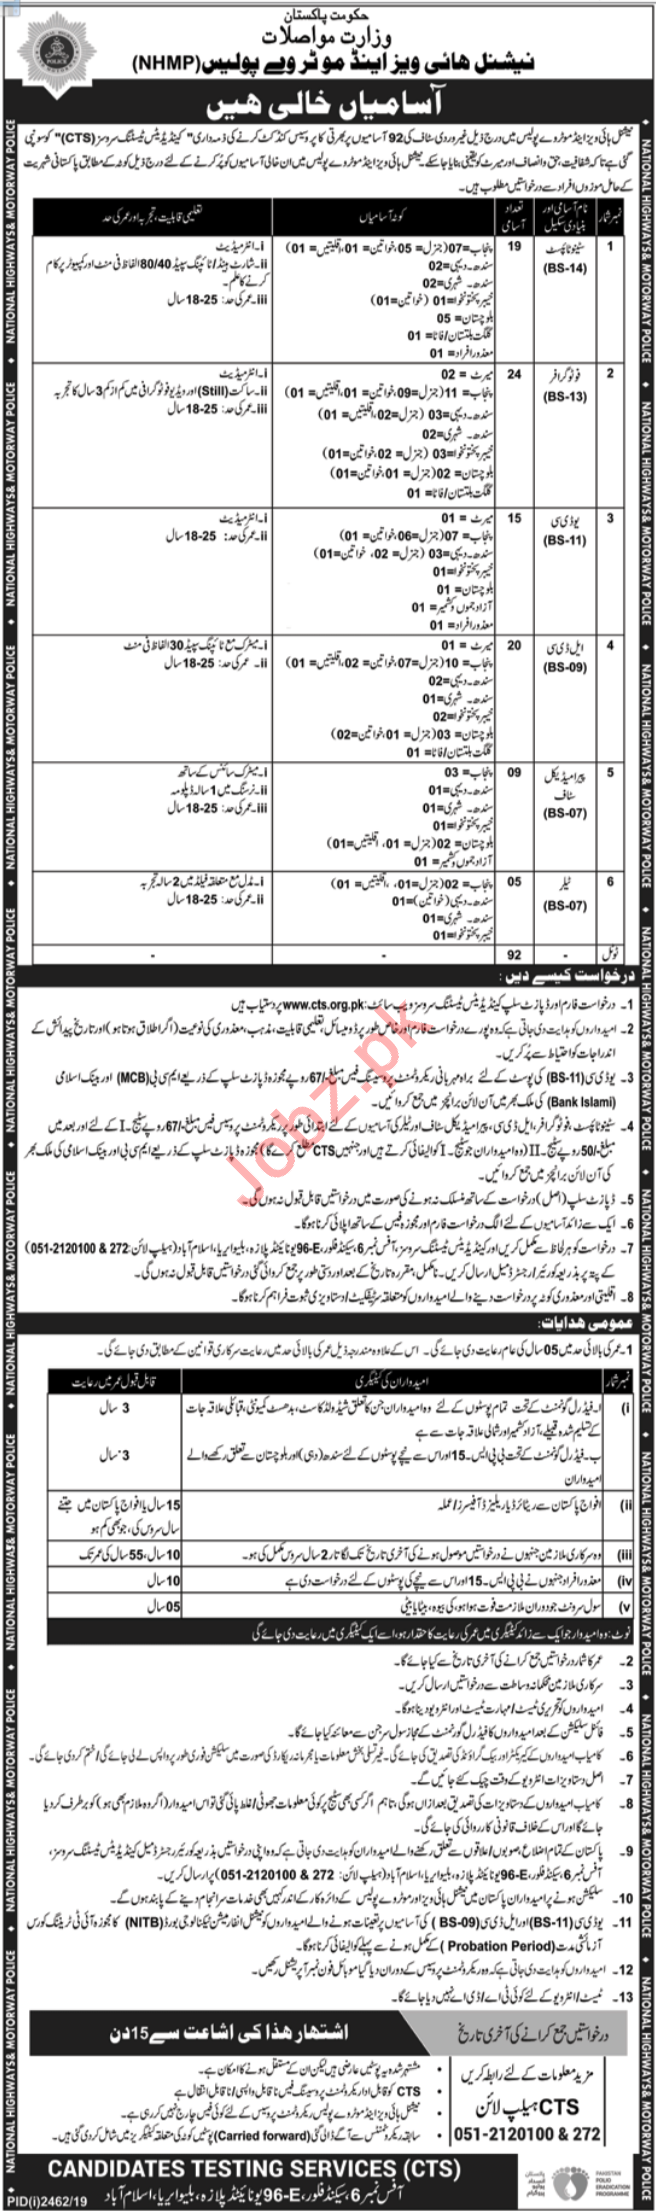 Ministry of Communications Clerical Staff Jobs Via CTS